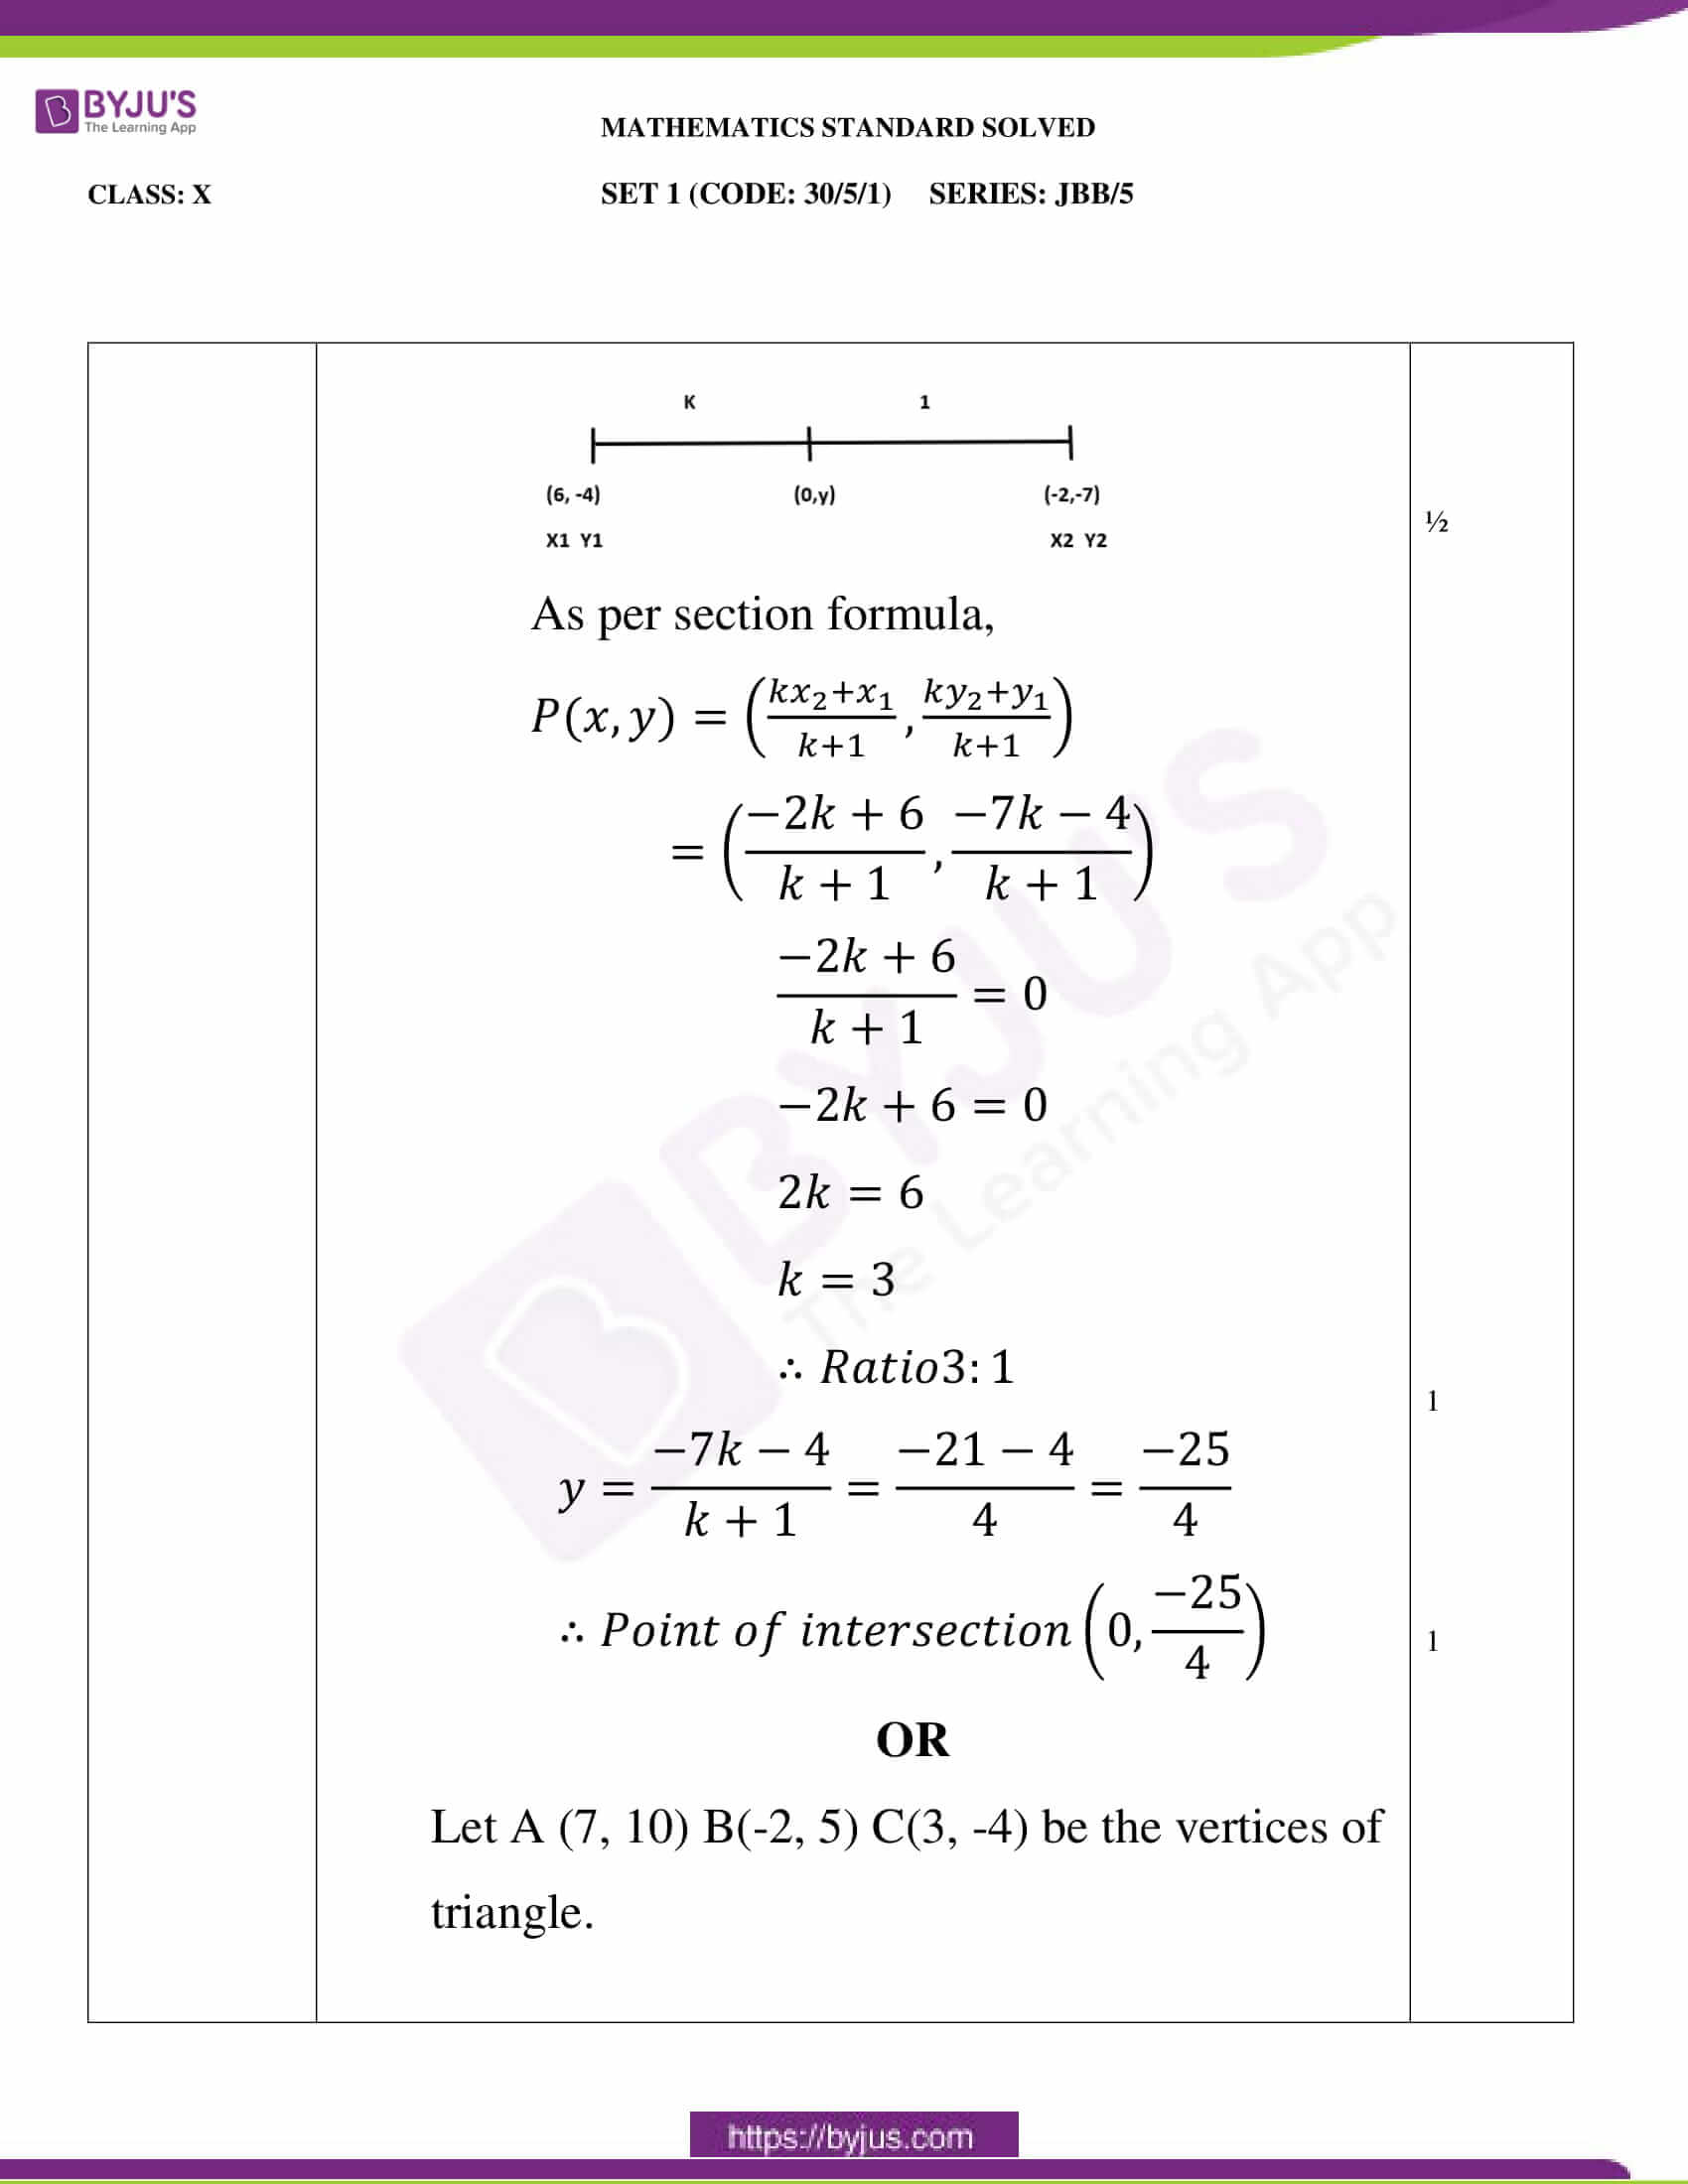 cbse class 10 maths standard question paper solution 2020 set 1 11